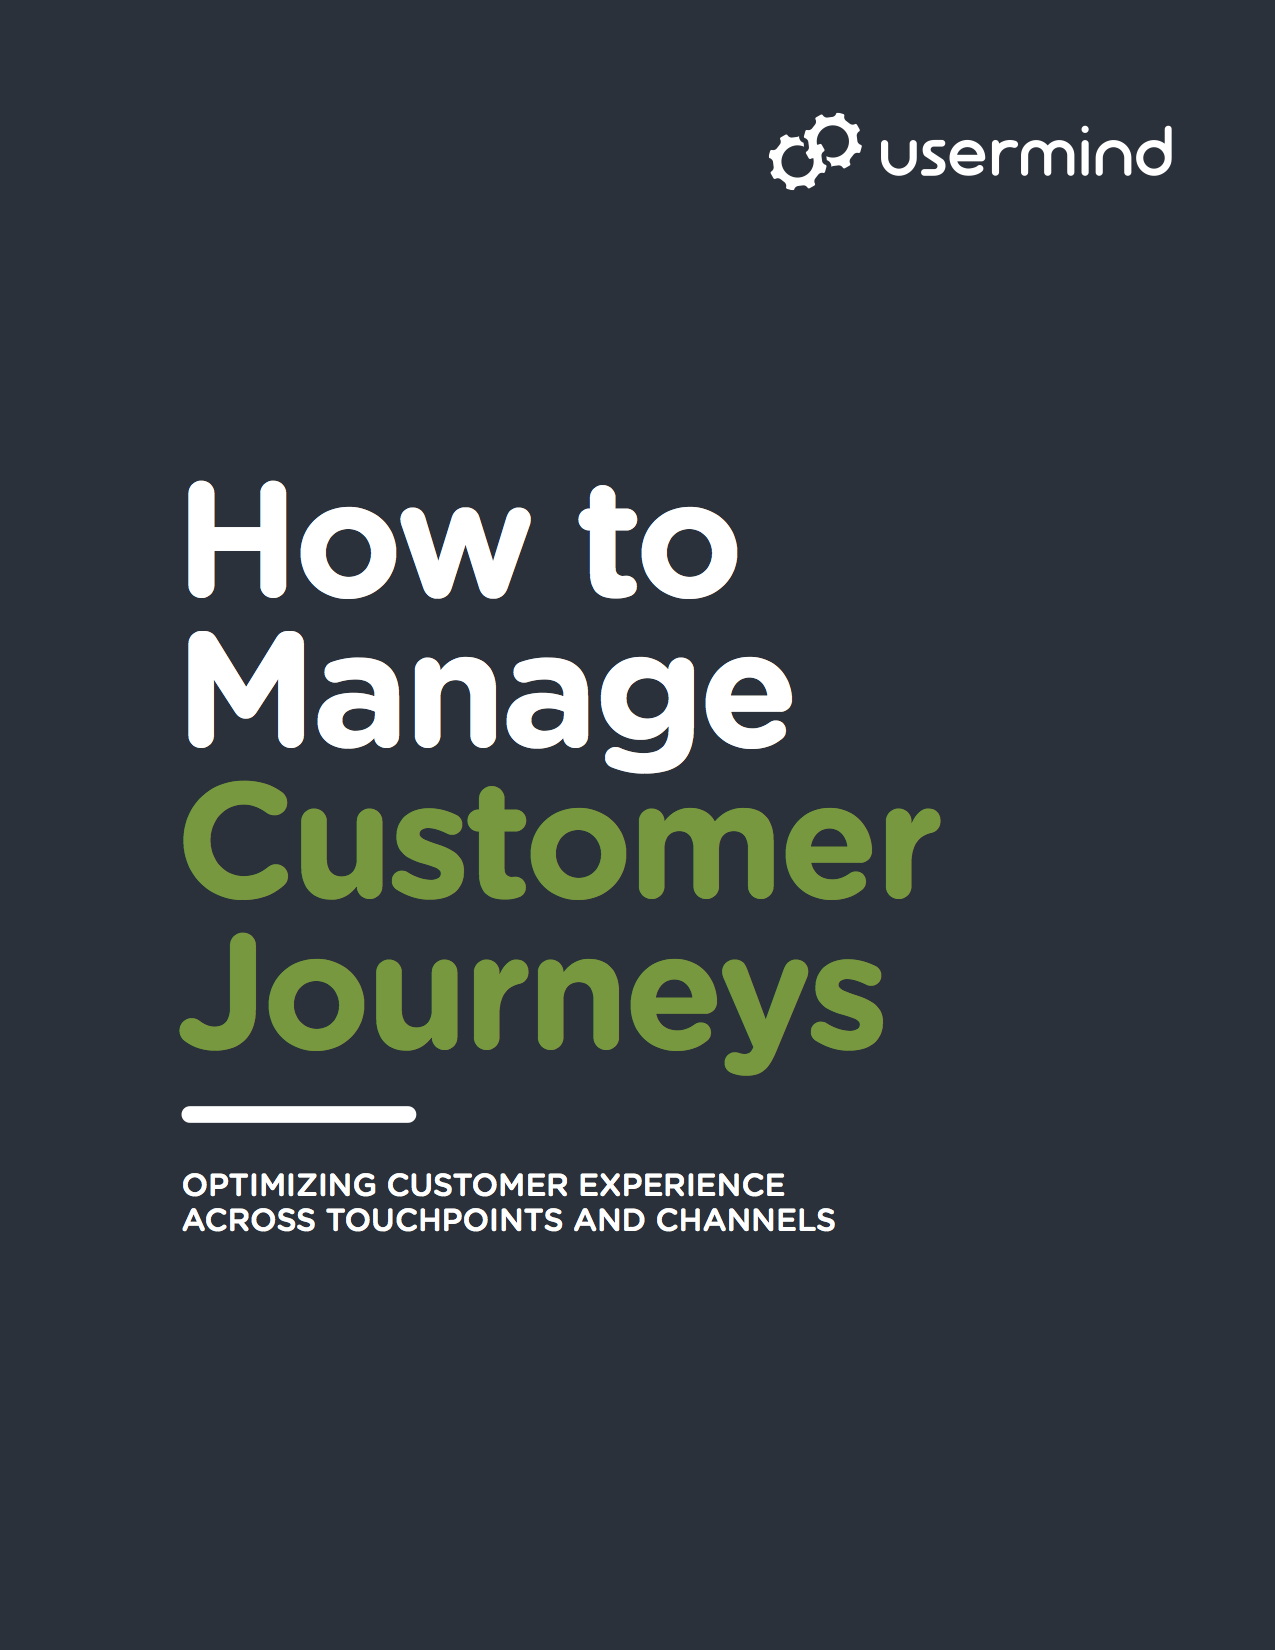 How to Manage Customer Journeys